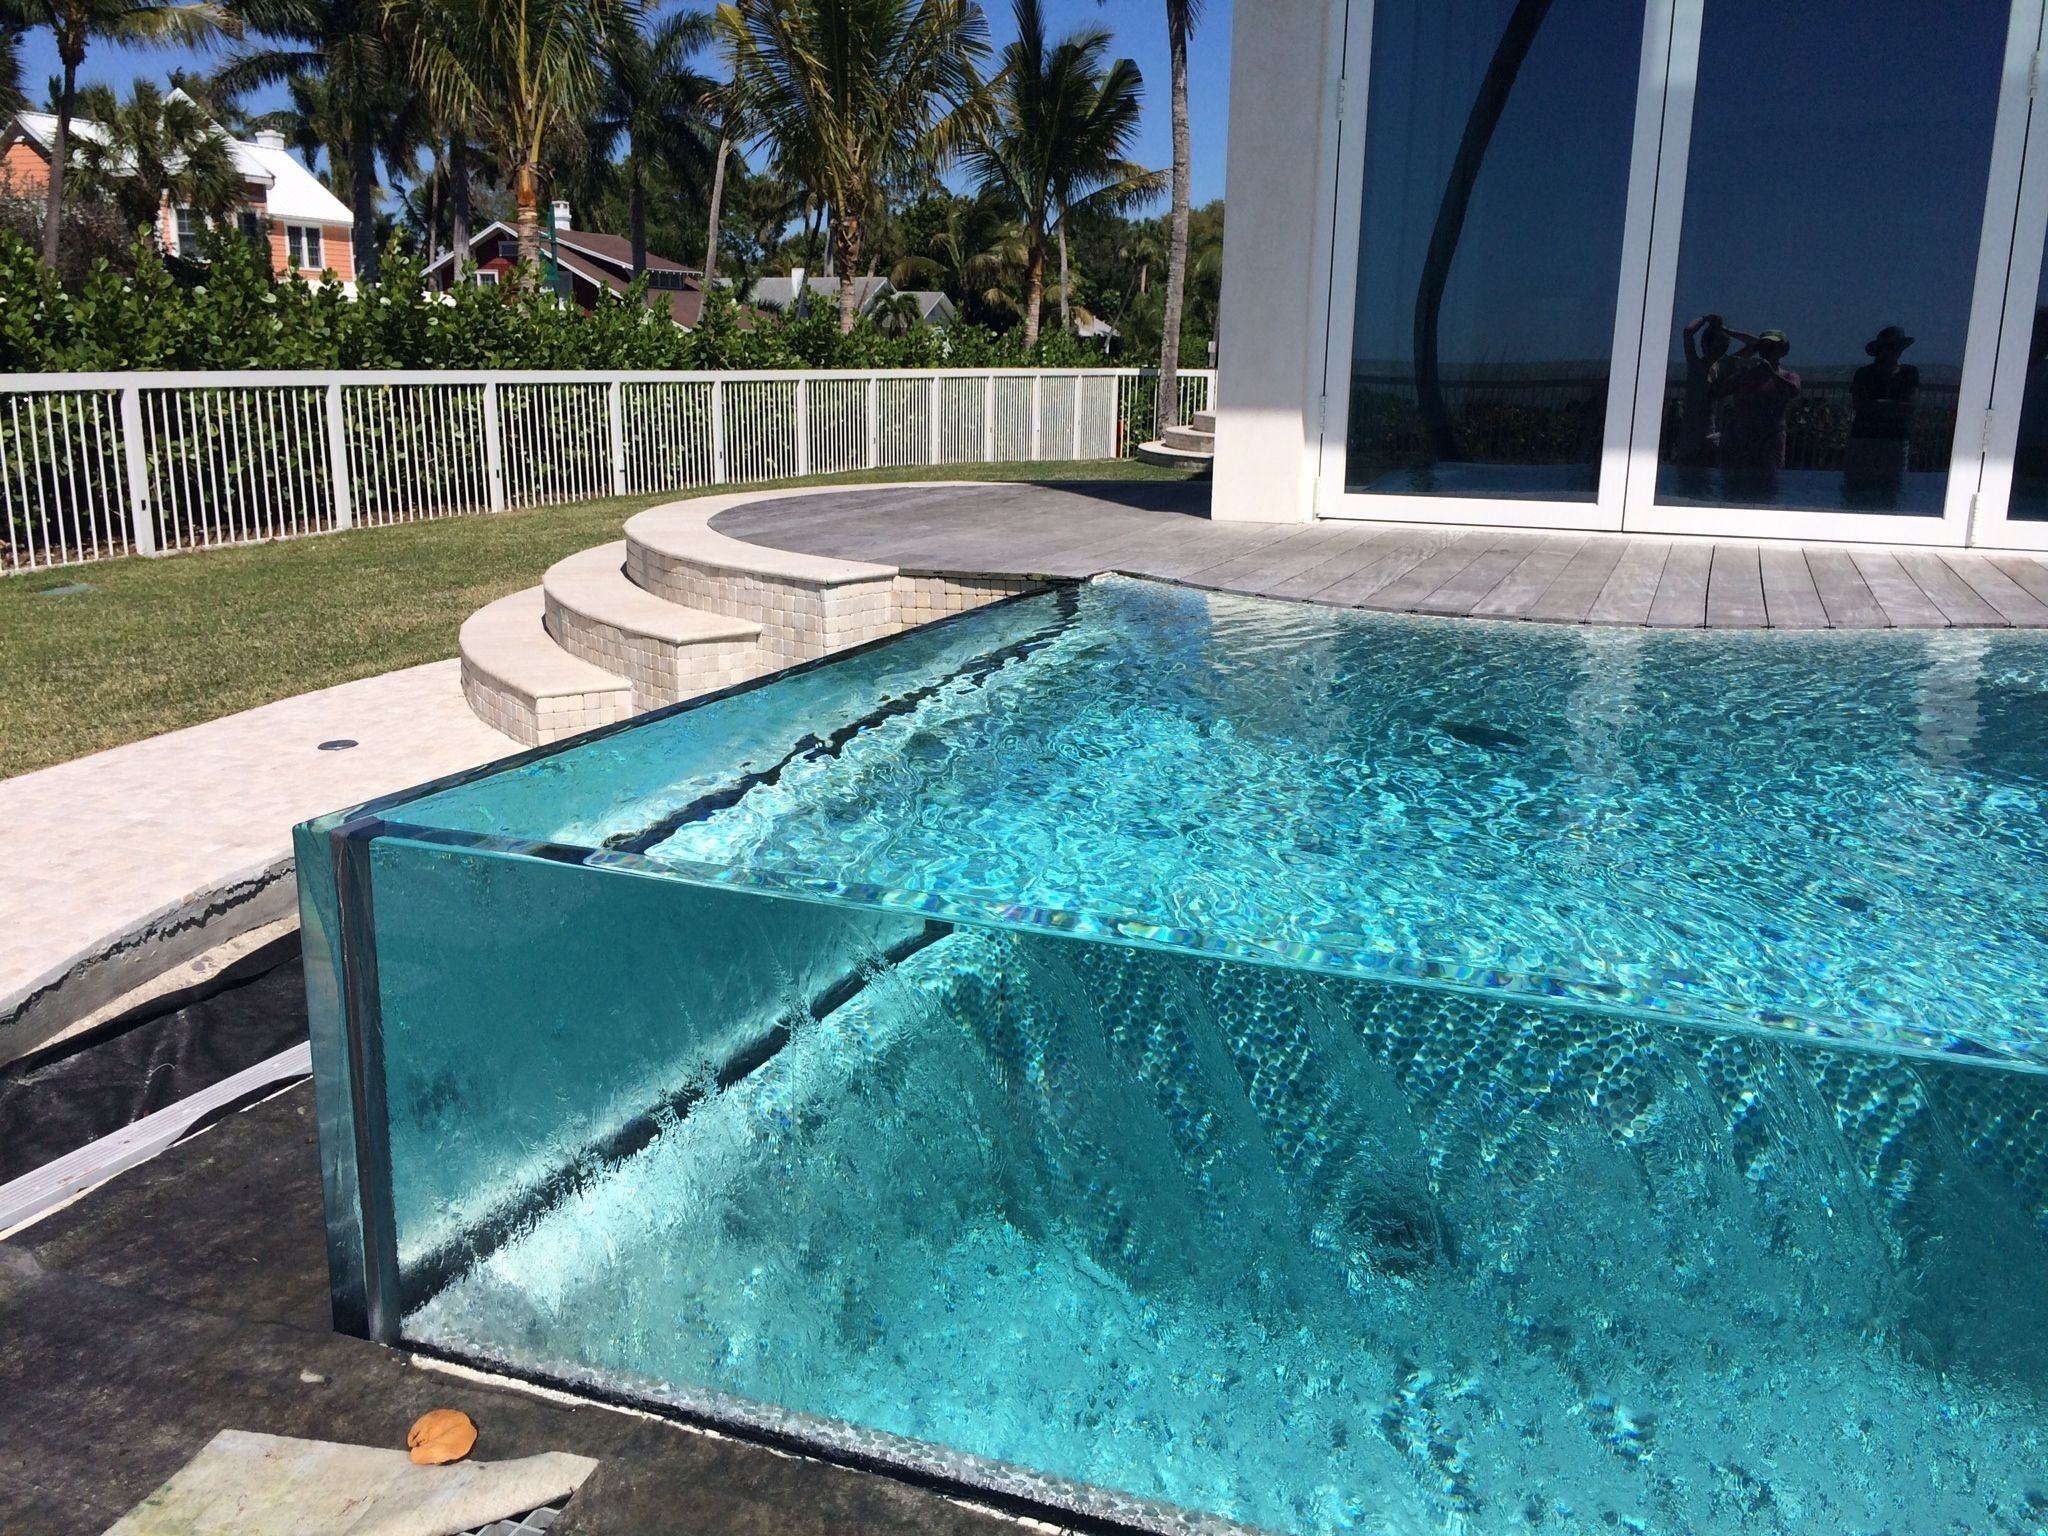 Amazing Glass Pool Design Ideas For Home08